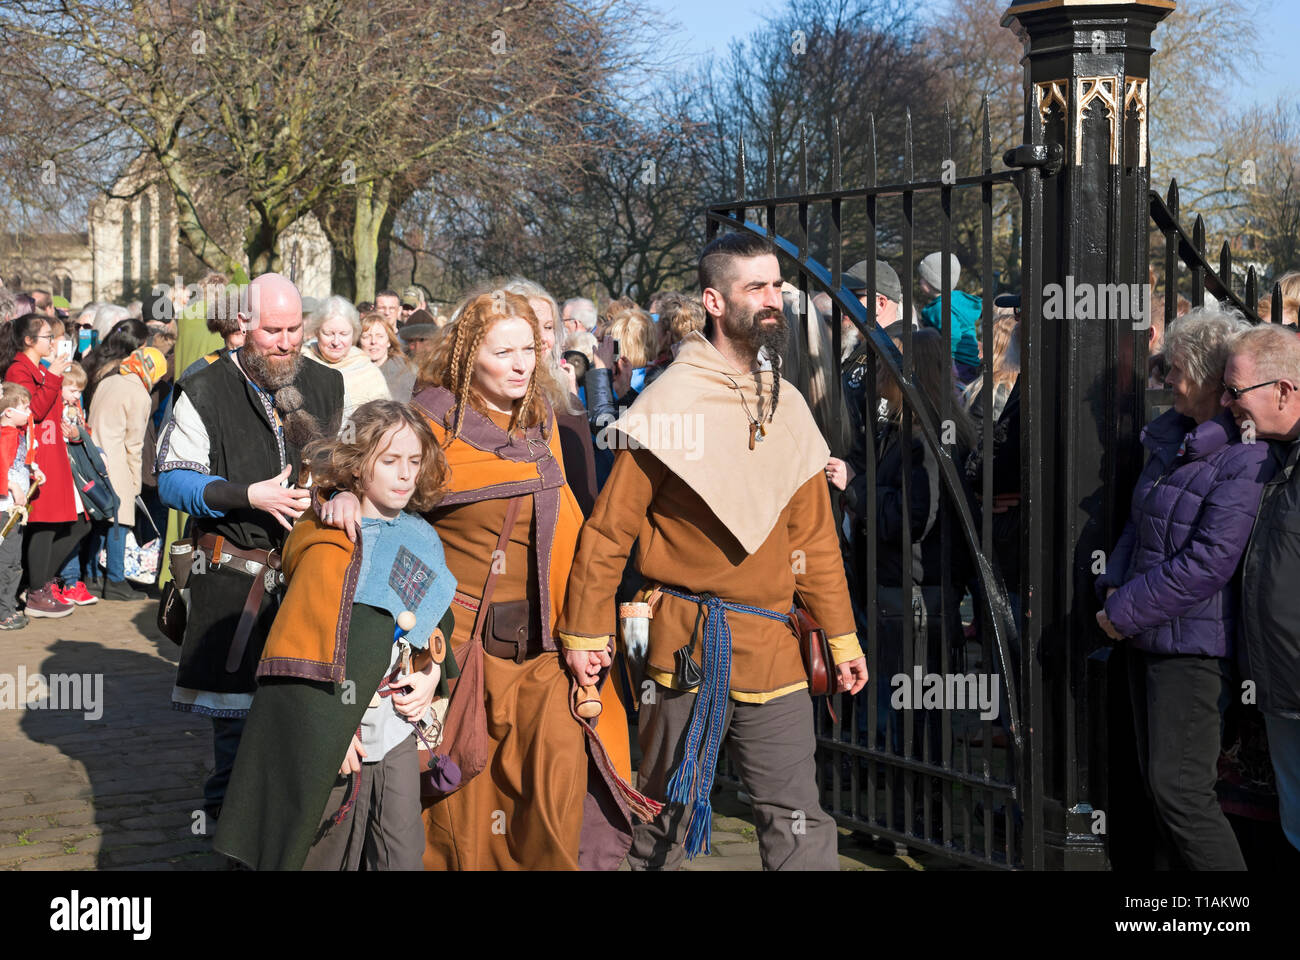 Procession of people in costume at the Viking Festival York North Yorkshire England UK United Kingdom GB Great Britain Stock Photo